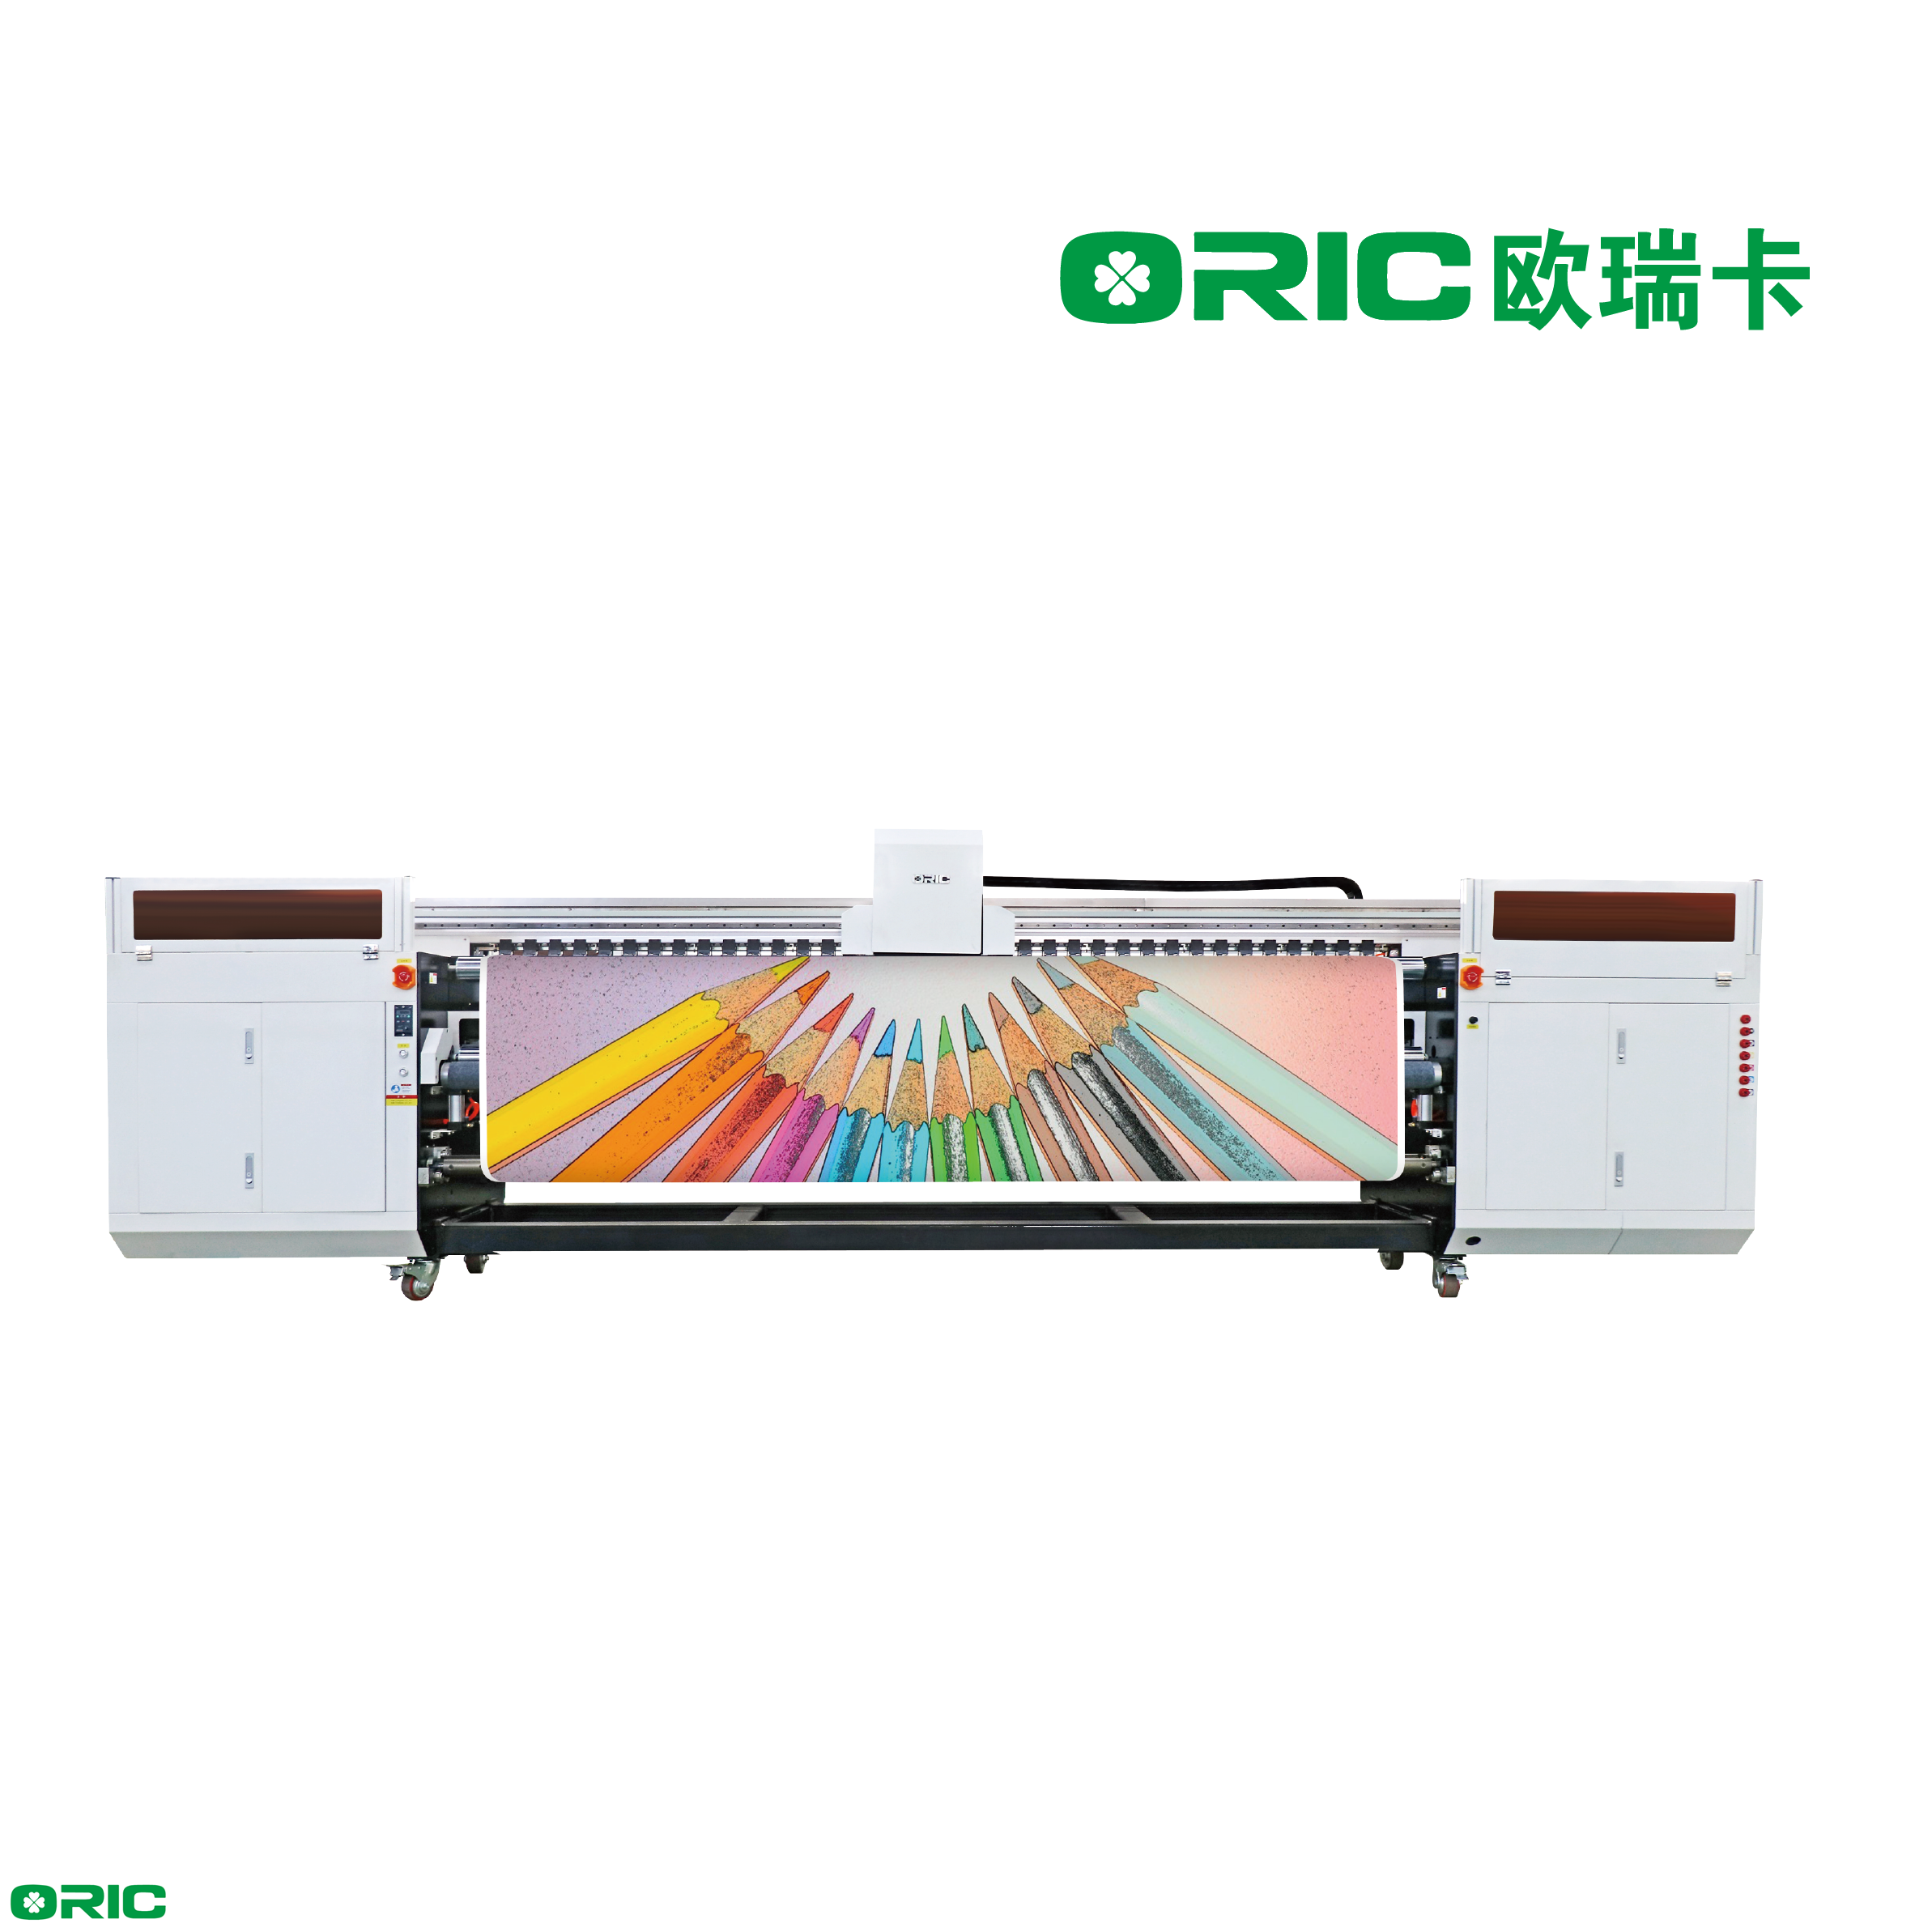 OR-3200UV Pro 3.2m UV Roll To Roll Printer With Six Ricoh Gen5 Print Heads